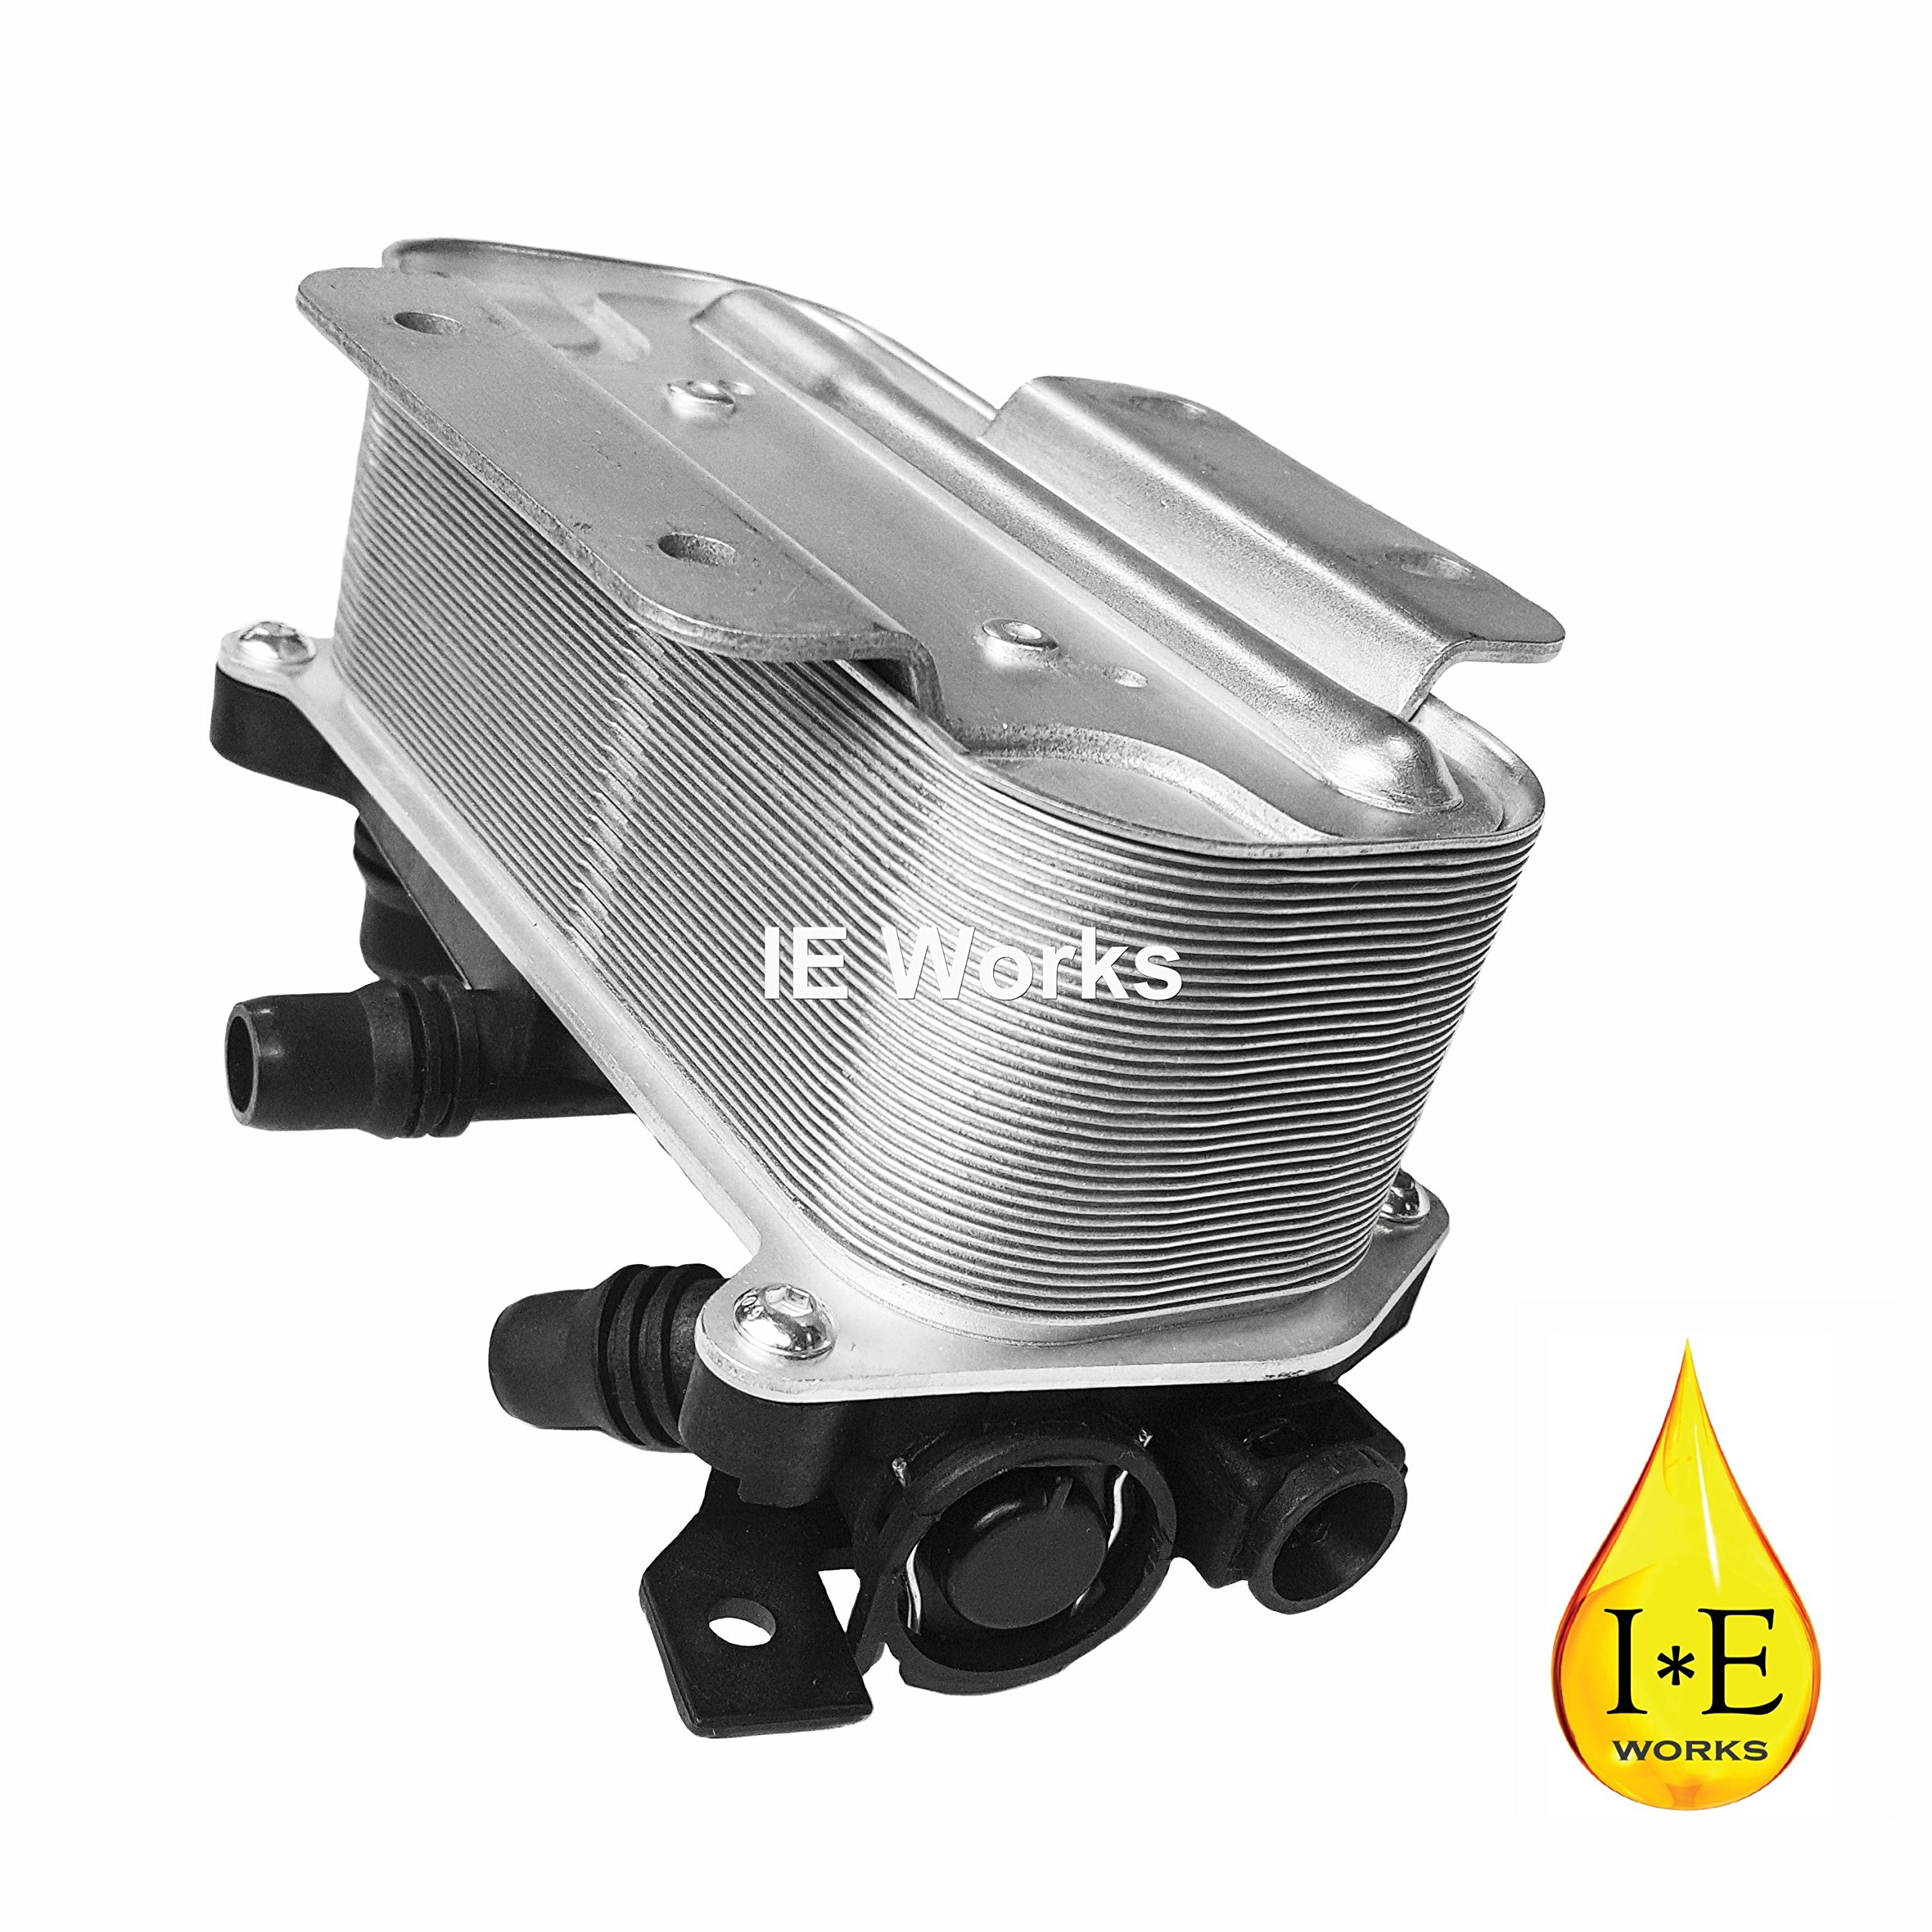 Brand New Radiator Transmission Oil Cooler Heat Exchanger for BMW 528i F10 F10N 17217638582 17217618778 2010 2011 2012 2013 2014 2015 2016